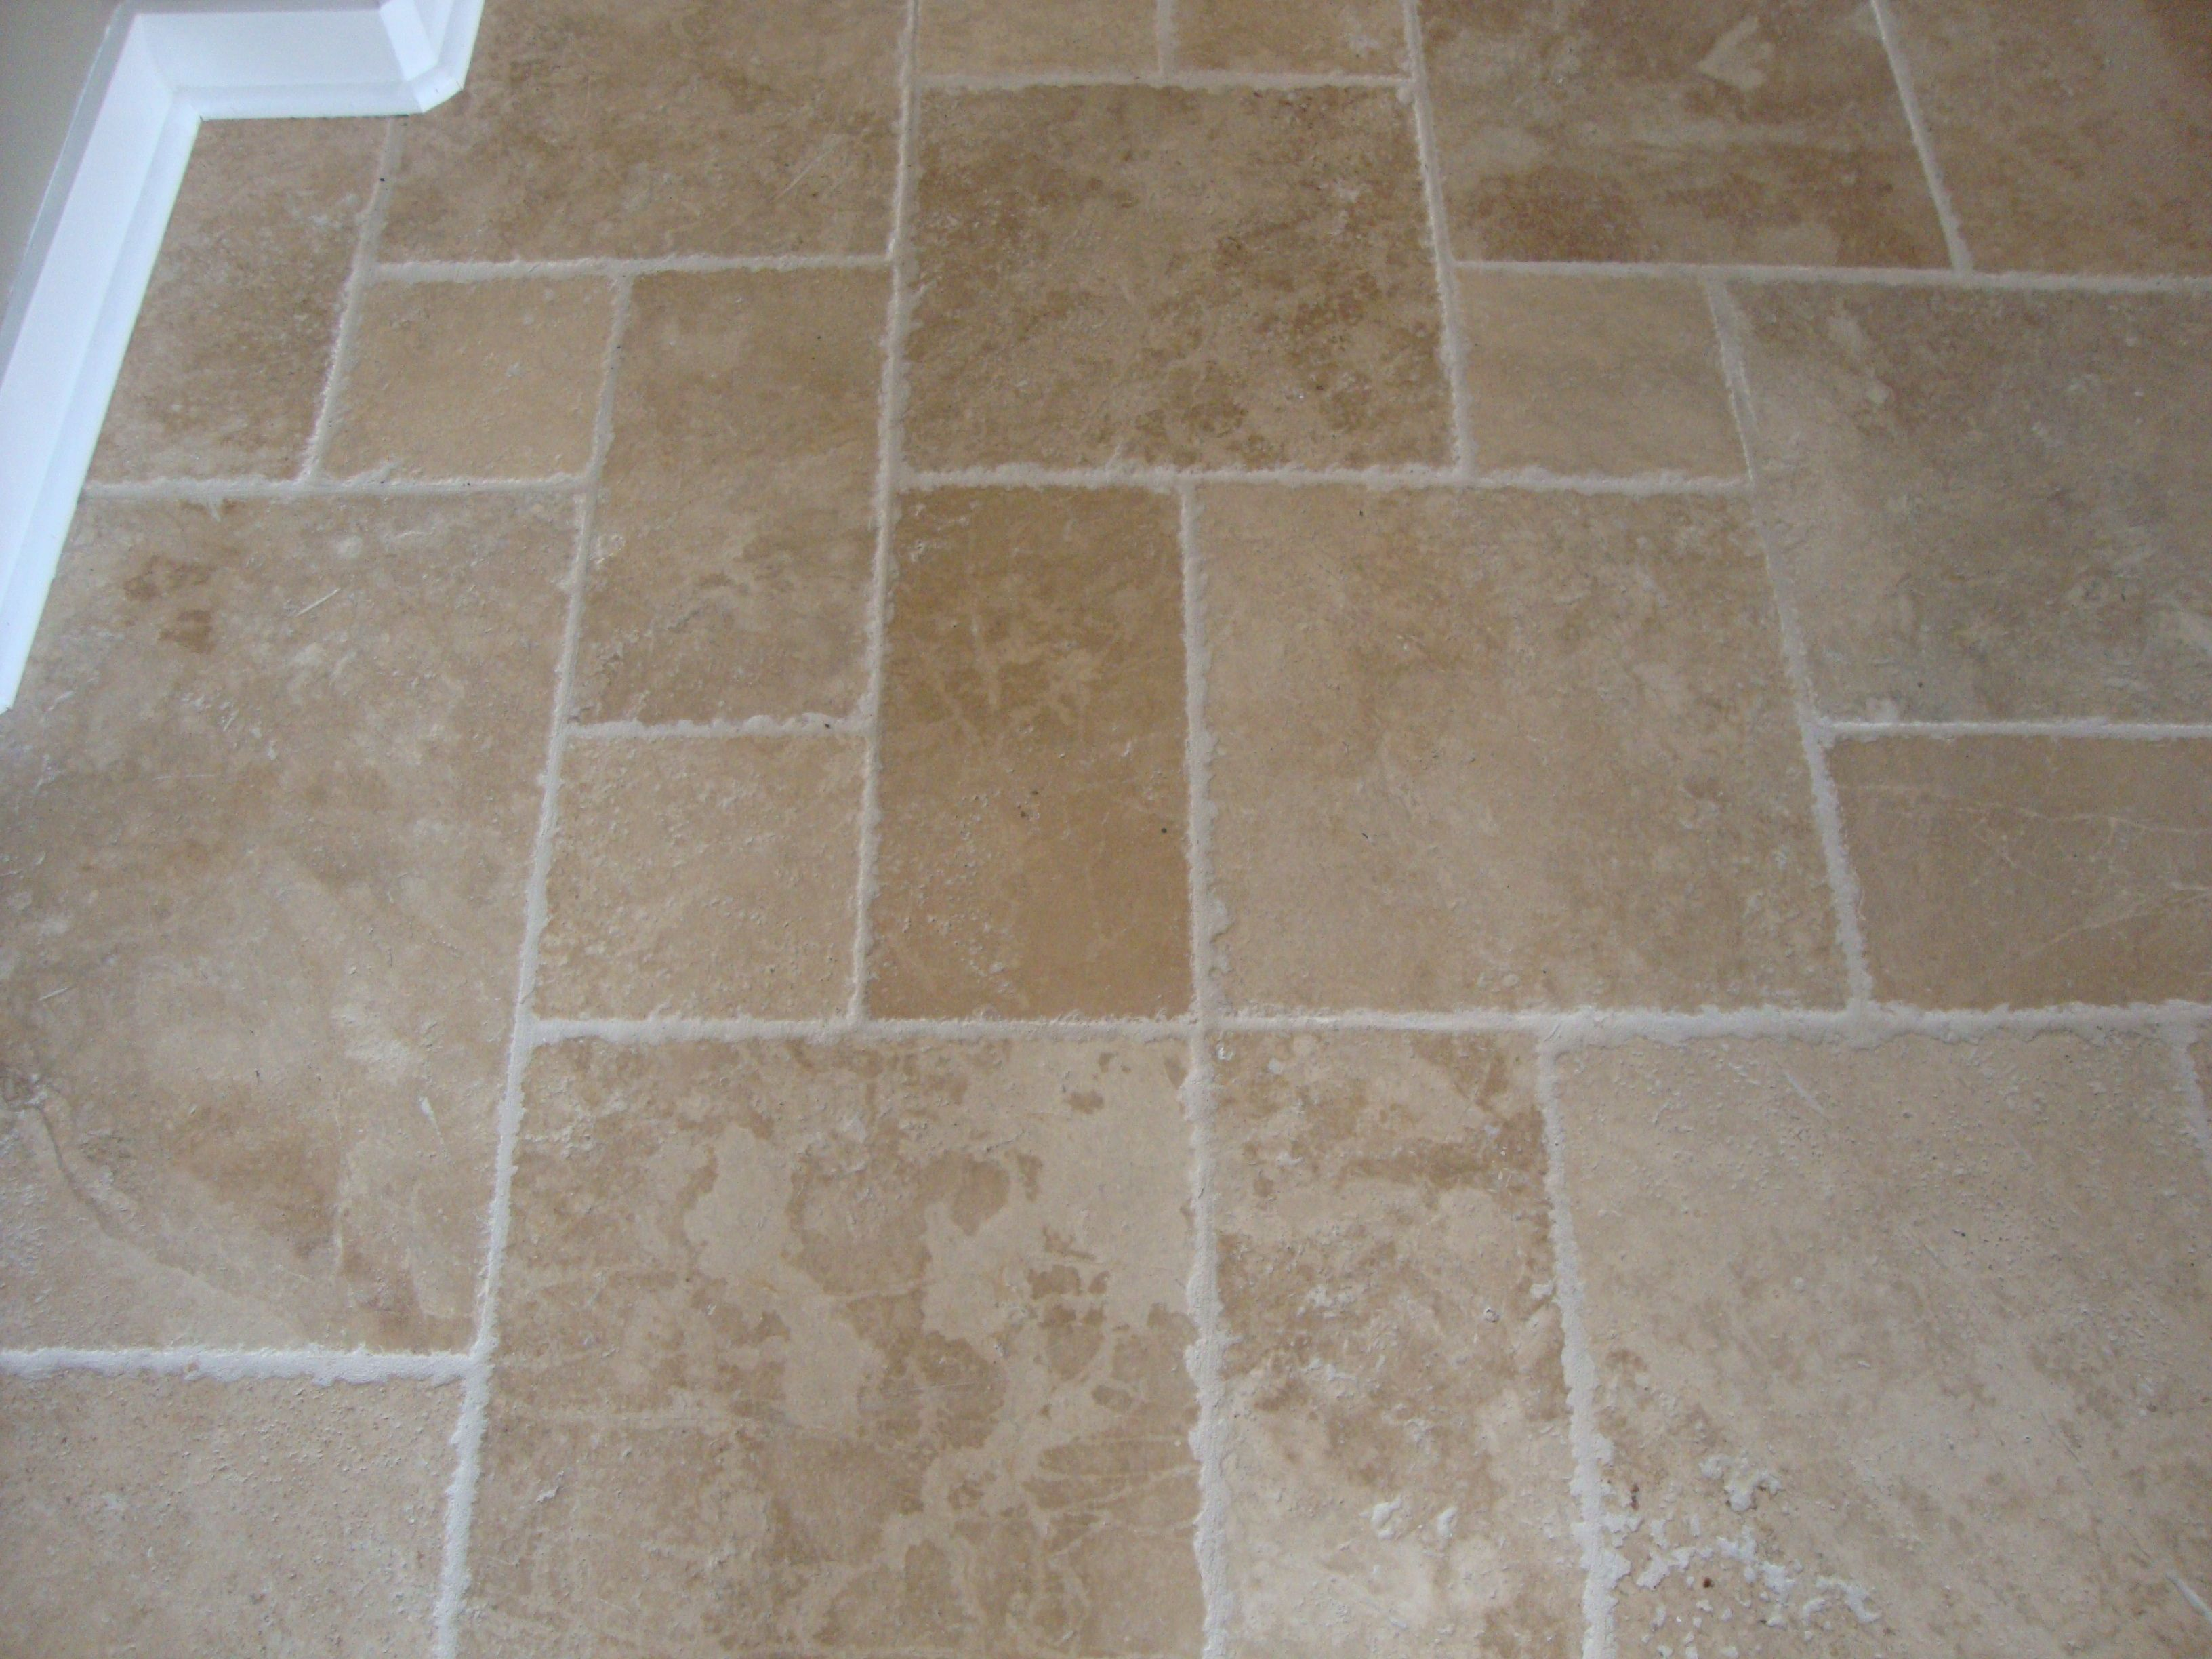 Walnut brushed chiseled edge versailles pattern travertine tile tile flooring dailygadgetfo Gallery